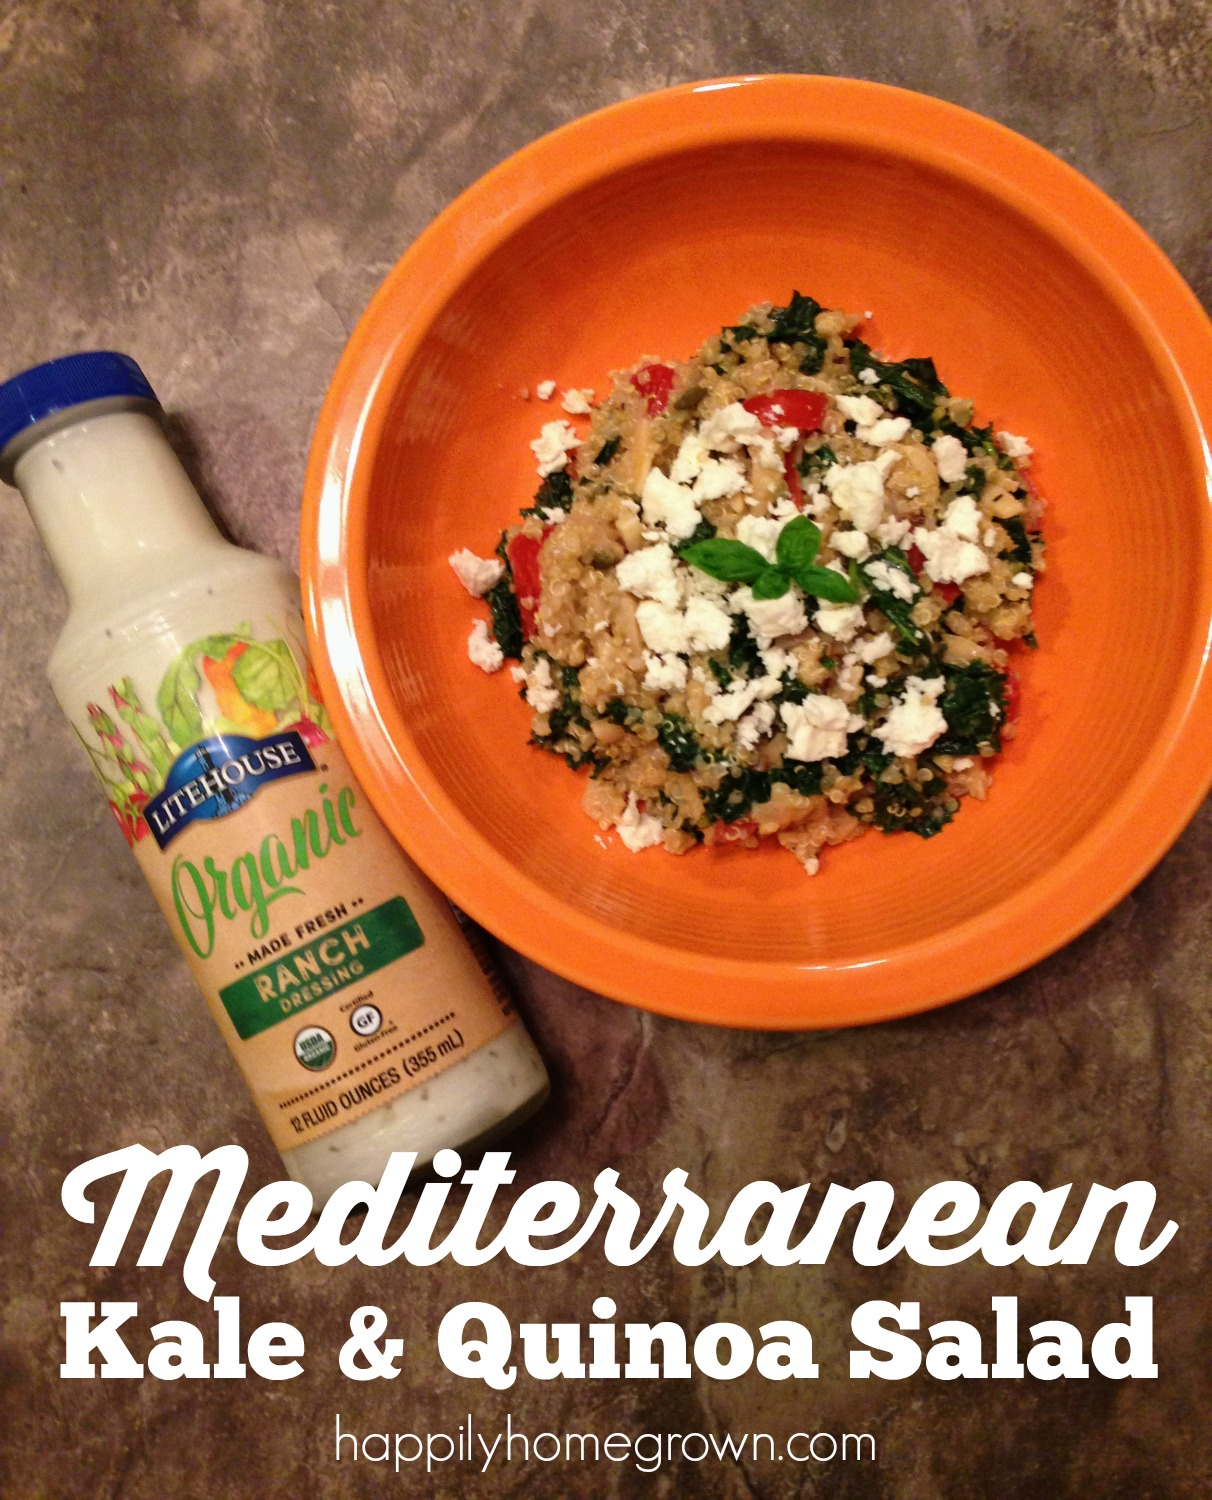 Don't eat food you can't pronounce, except for quinoa. Eat quinoa - especially in this delicious Mediterranean Kale & Quinoa Salad. #seethelite #ad